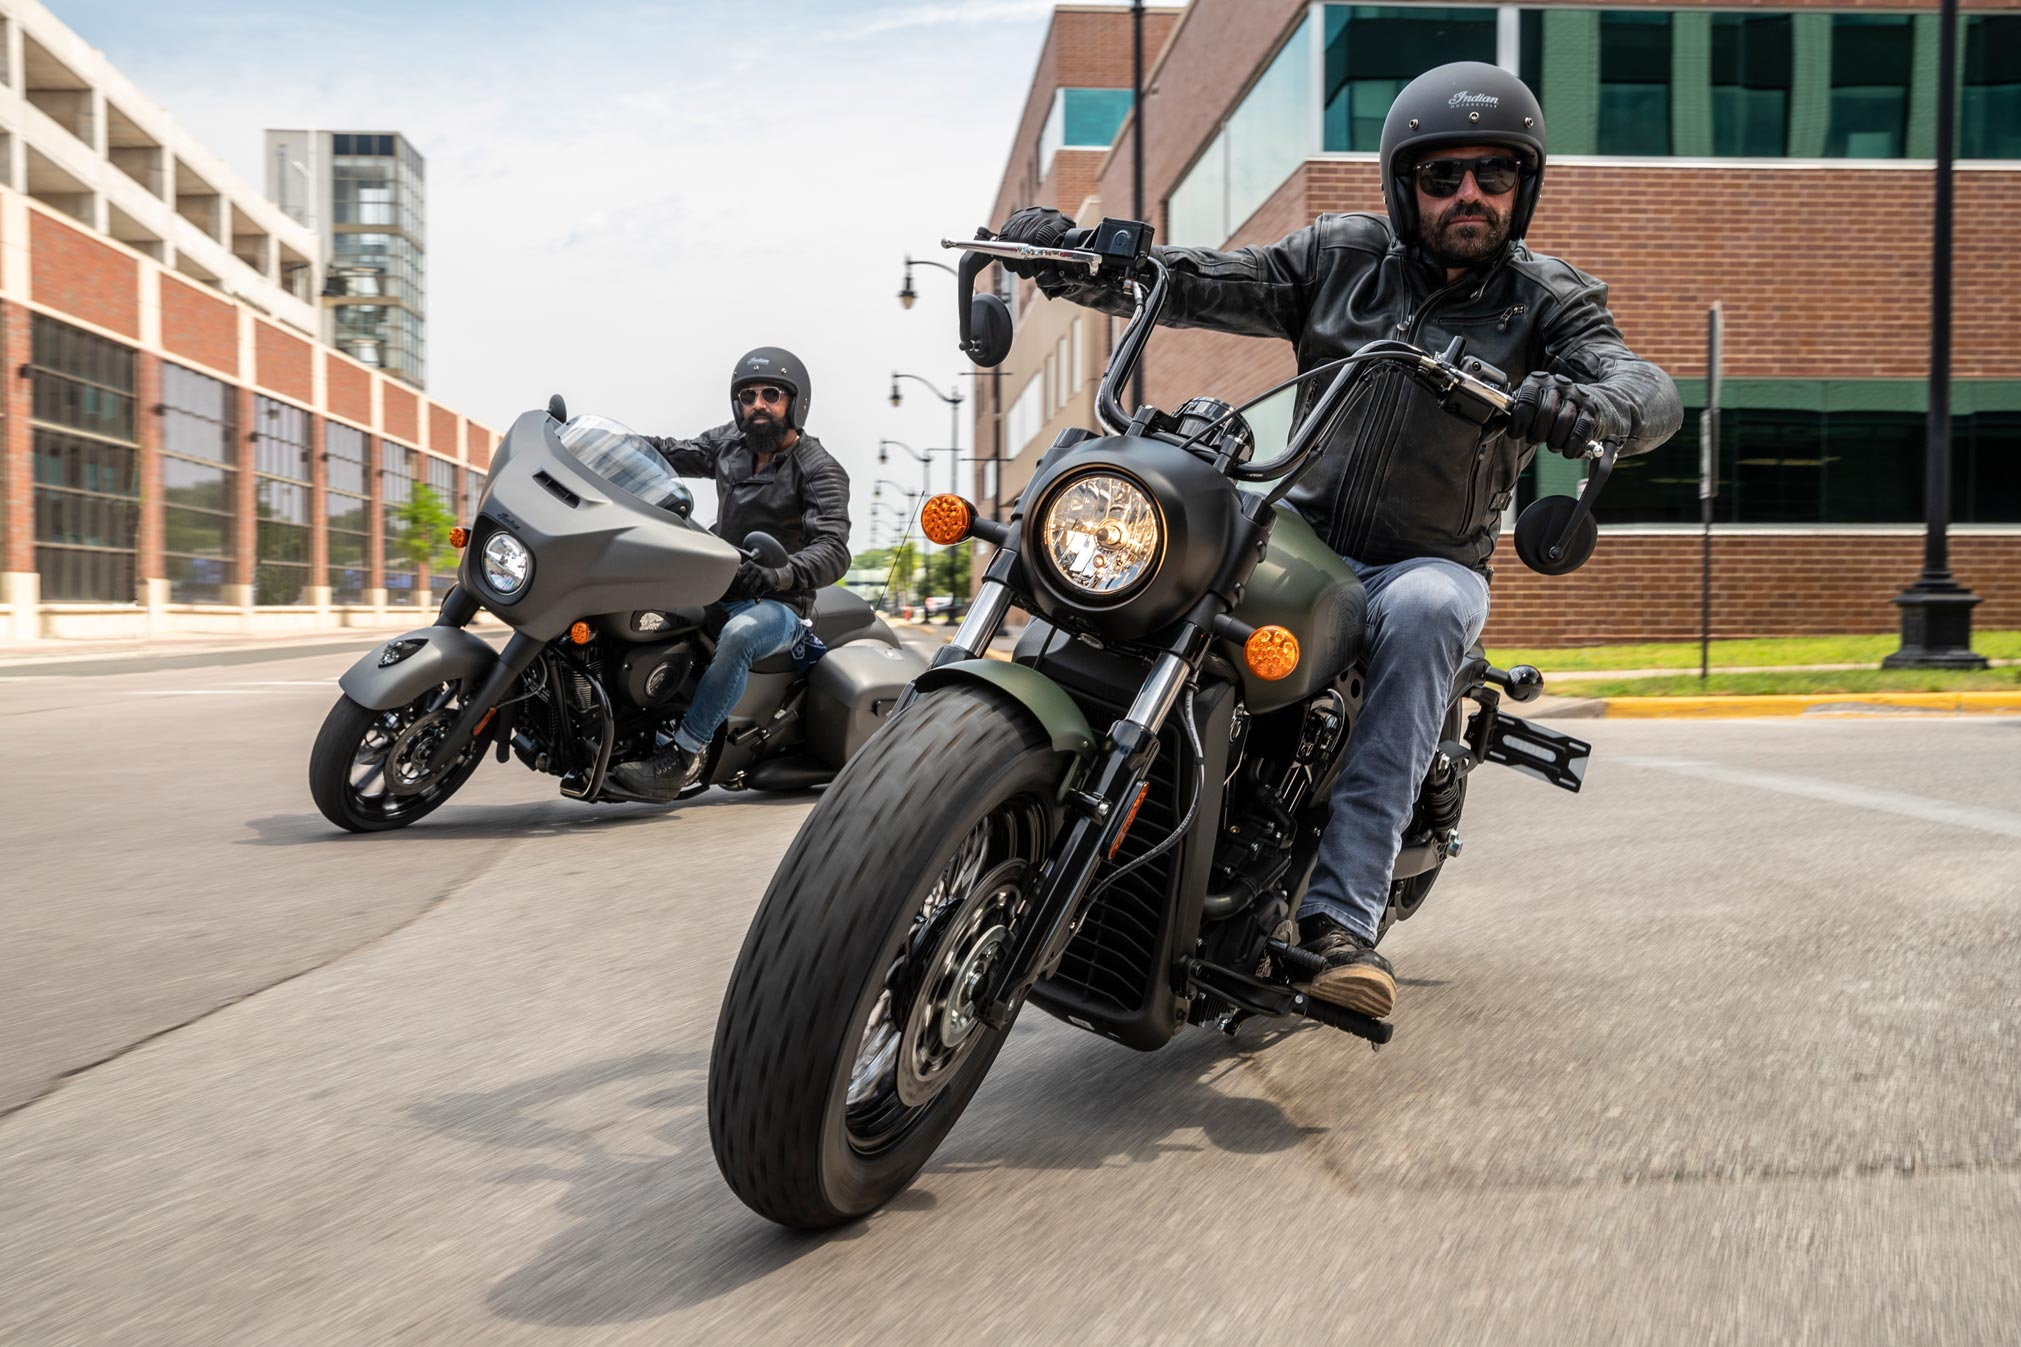 2021 Indian Scout Bobber Twenty Guide Total Motorcycle